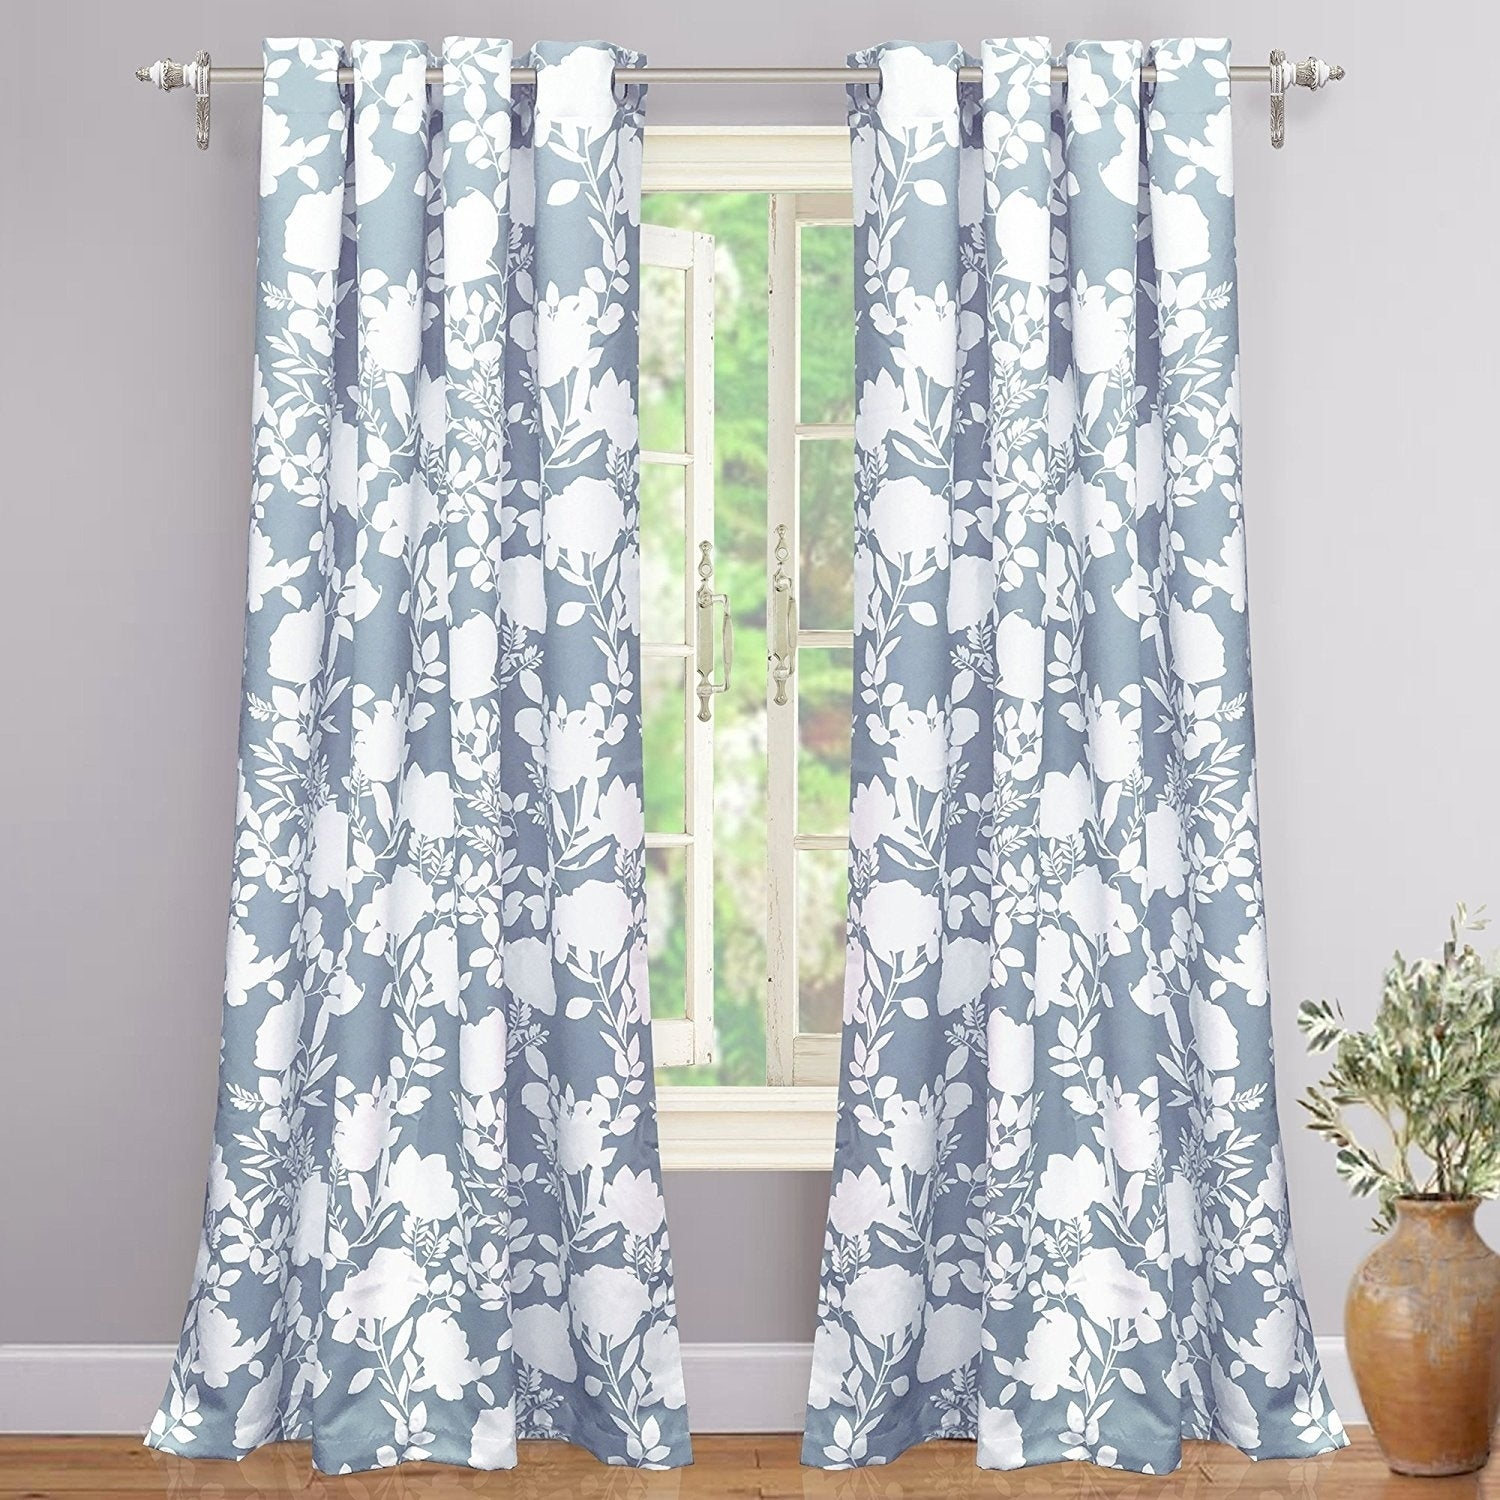 Porch & Den Nolana Floral Room Darkening Grommet Window Curtain Panel Pair intended for Floral Pattern Room Darkening Window Curtain Panel Pairs (Image 19 of 20)